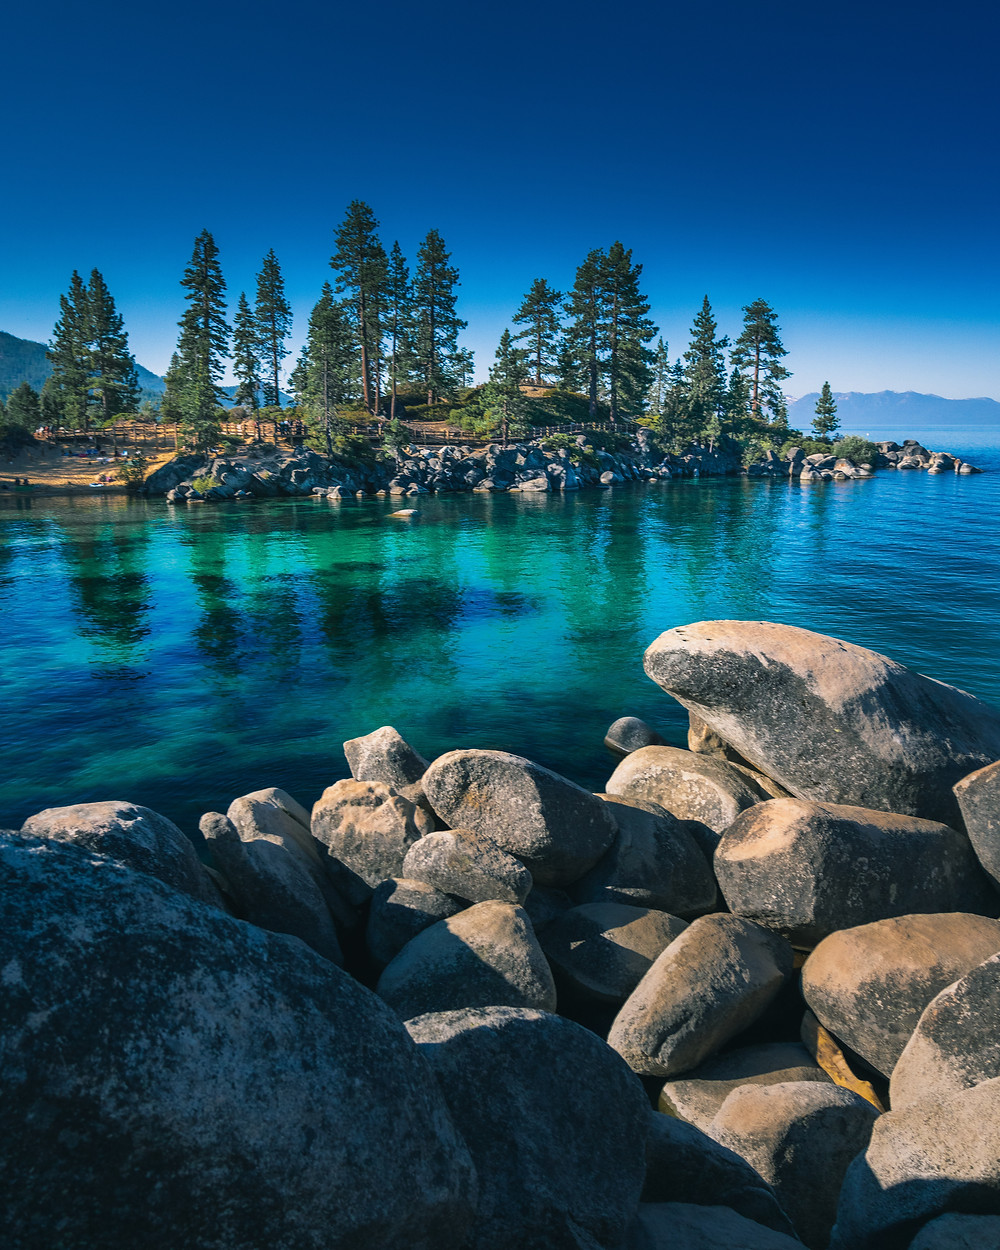 Crystal clear and calm glassy waters of Sand Harbor Beach in Lake Tahoe